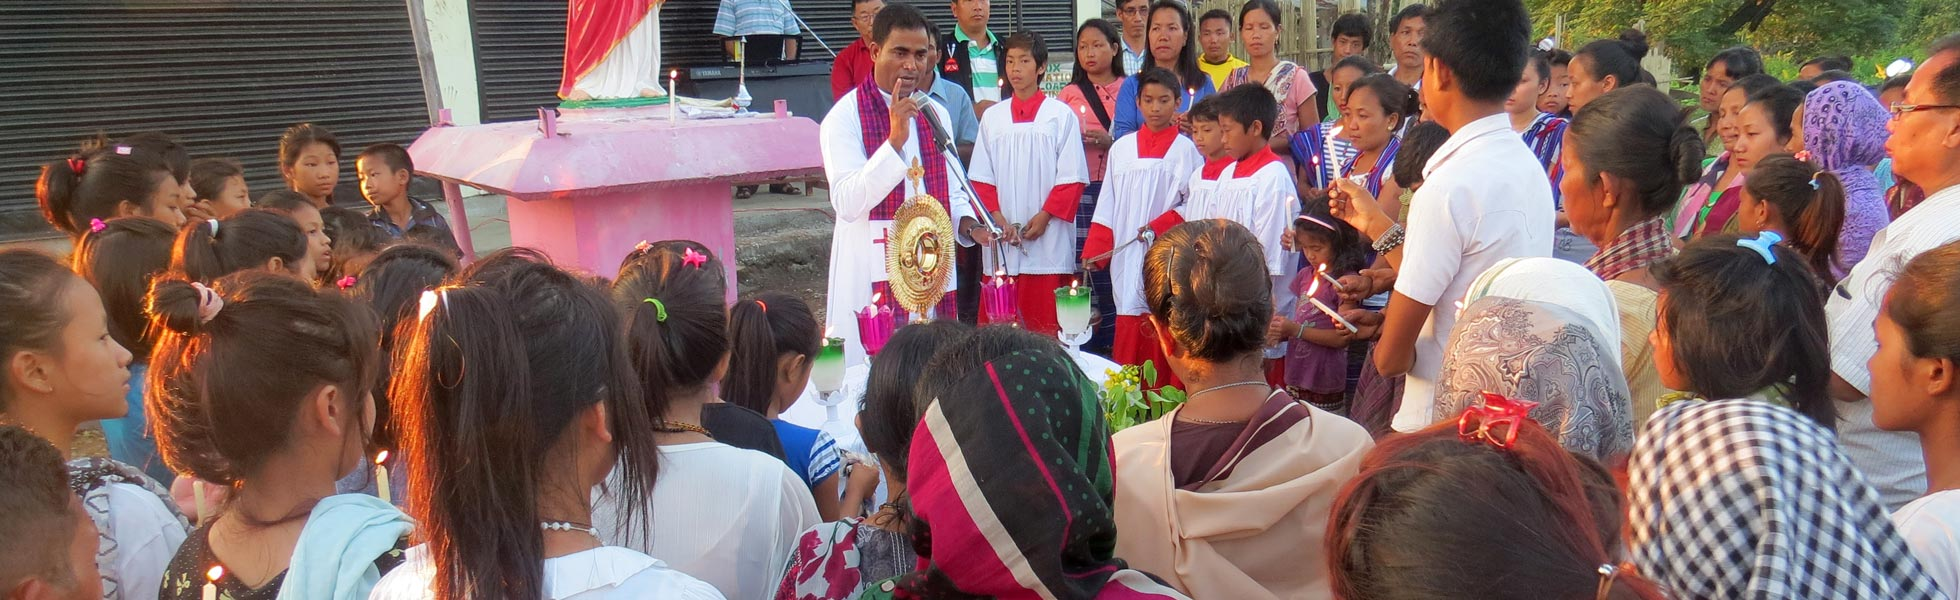 "In the diocese of Miao in India a priest has to be ""all things to all men"""